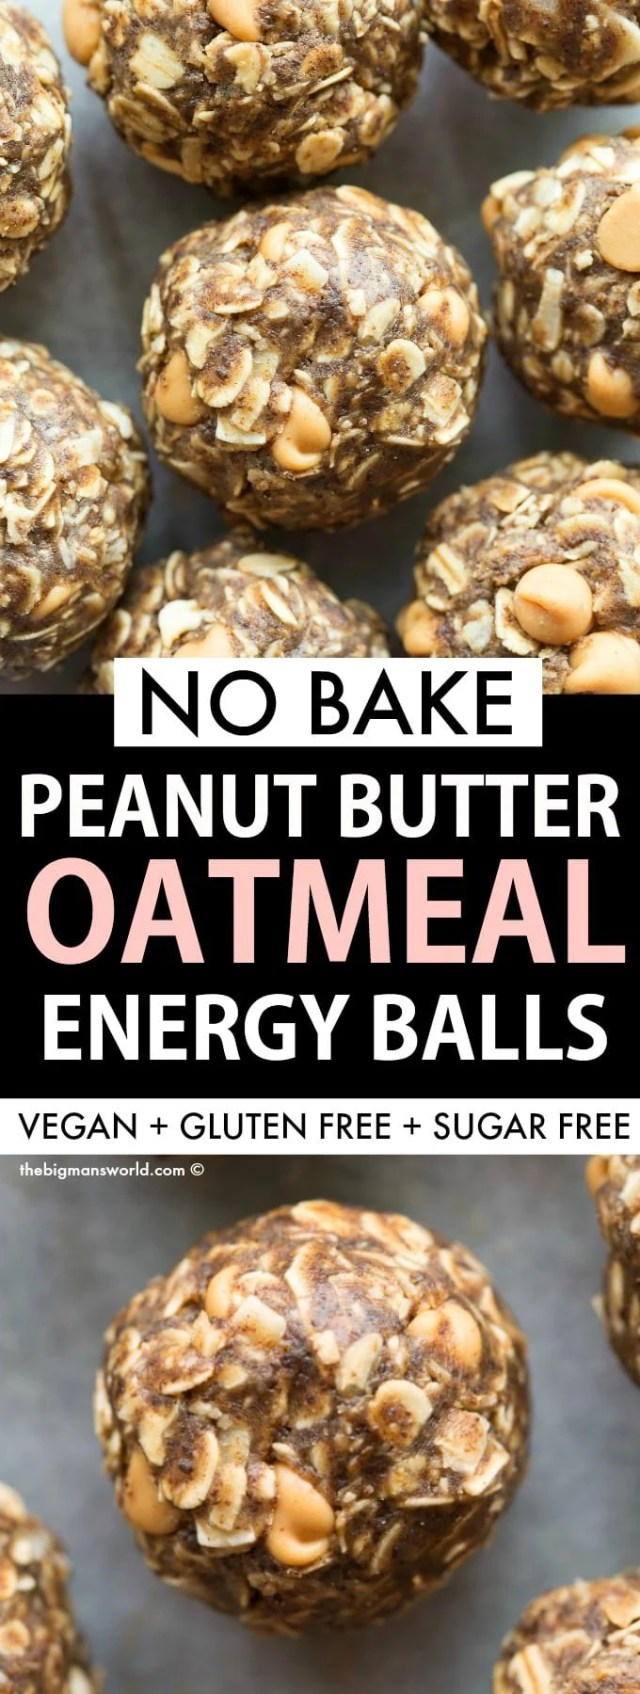 Healthy No Bake Energy Balls recipe with peanut butter, maple syrup and oatmeal!